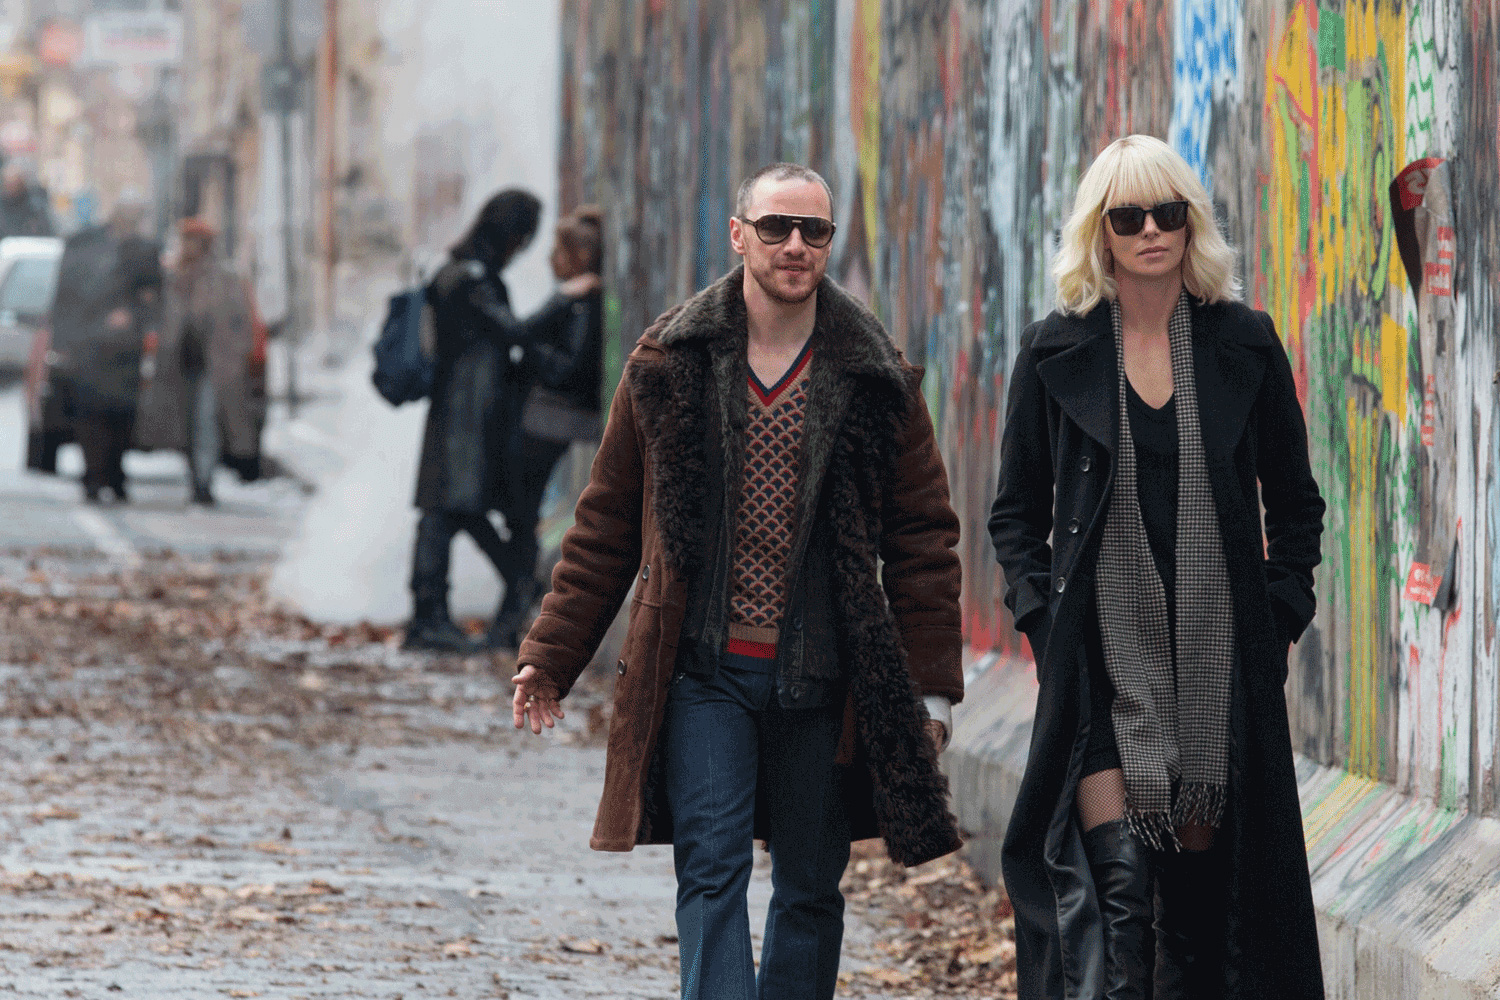 Atomic blonde, film